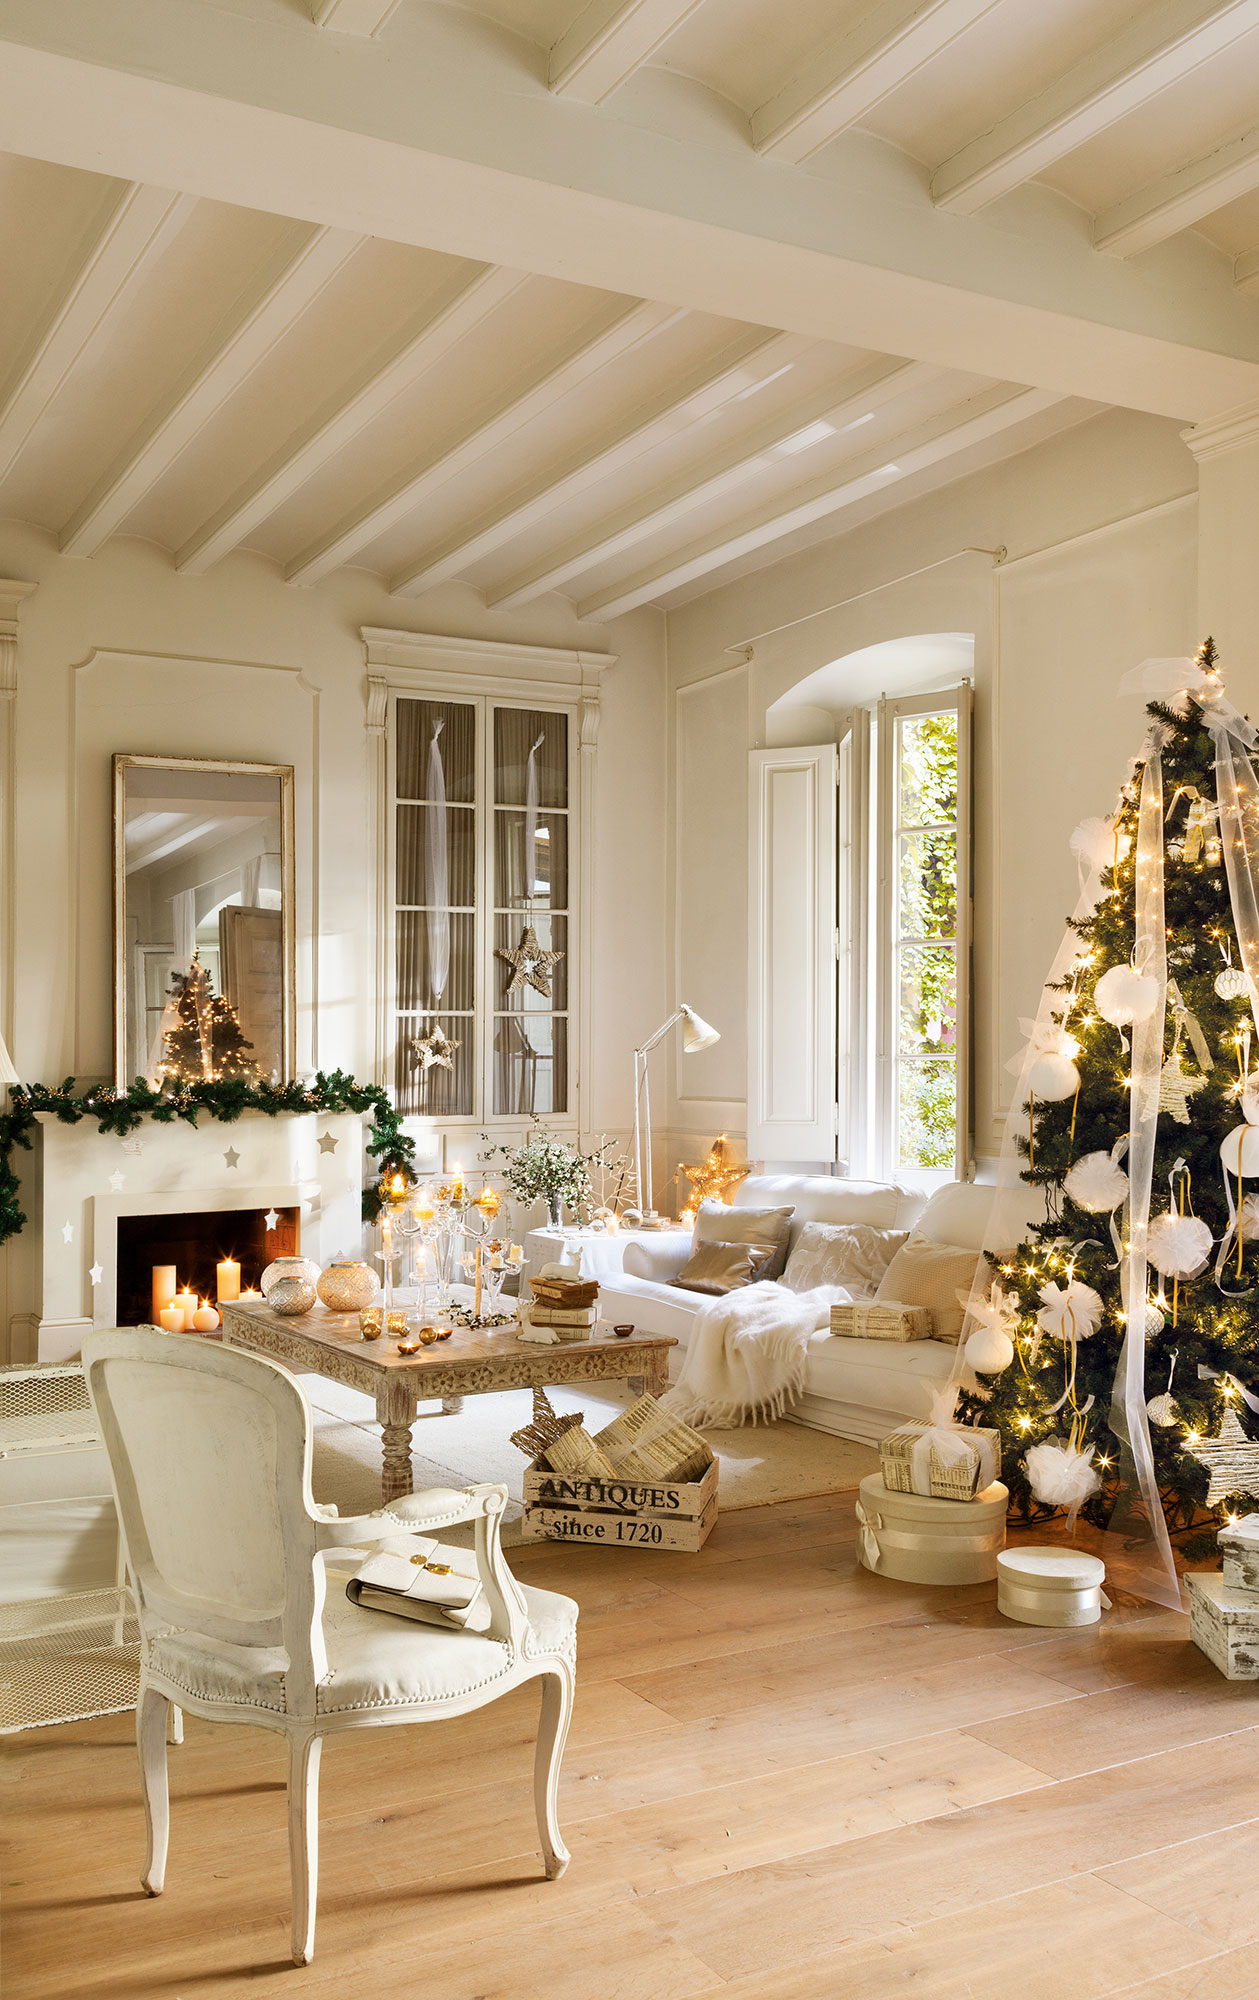 Decorar Salon Navideno.Ideas Para Decorar De Navidad Tu Casa En Dorado Y Blanco